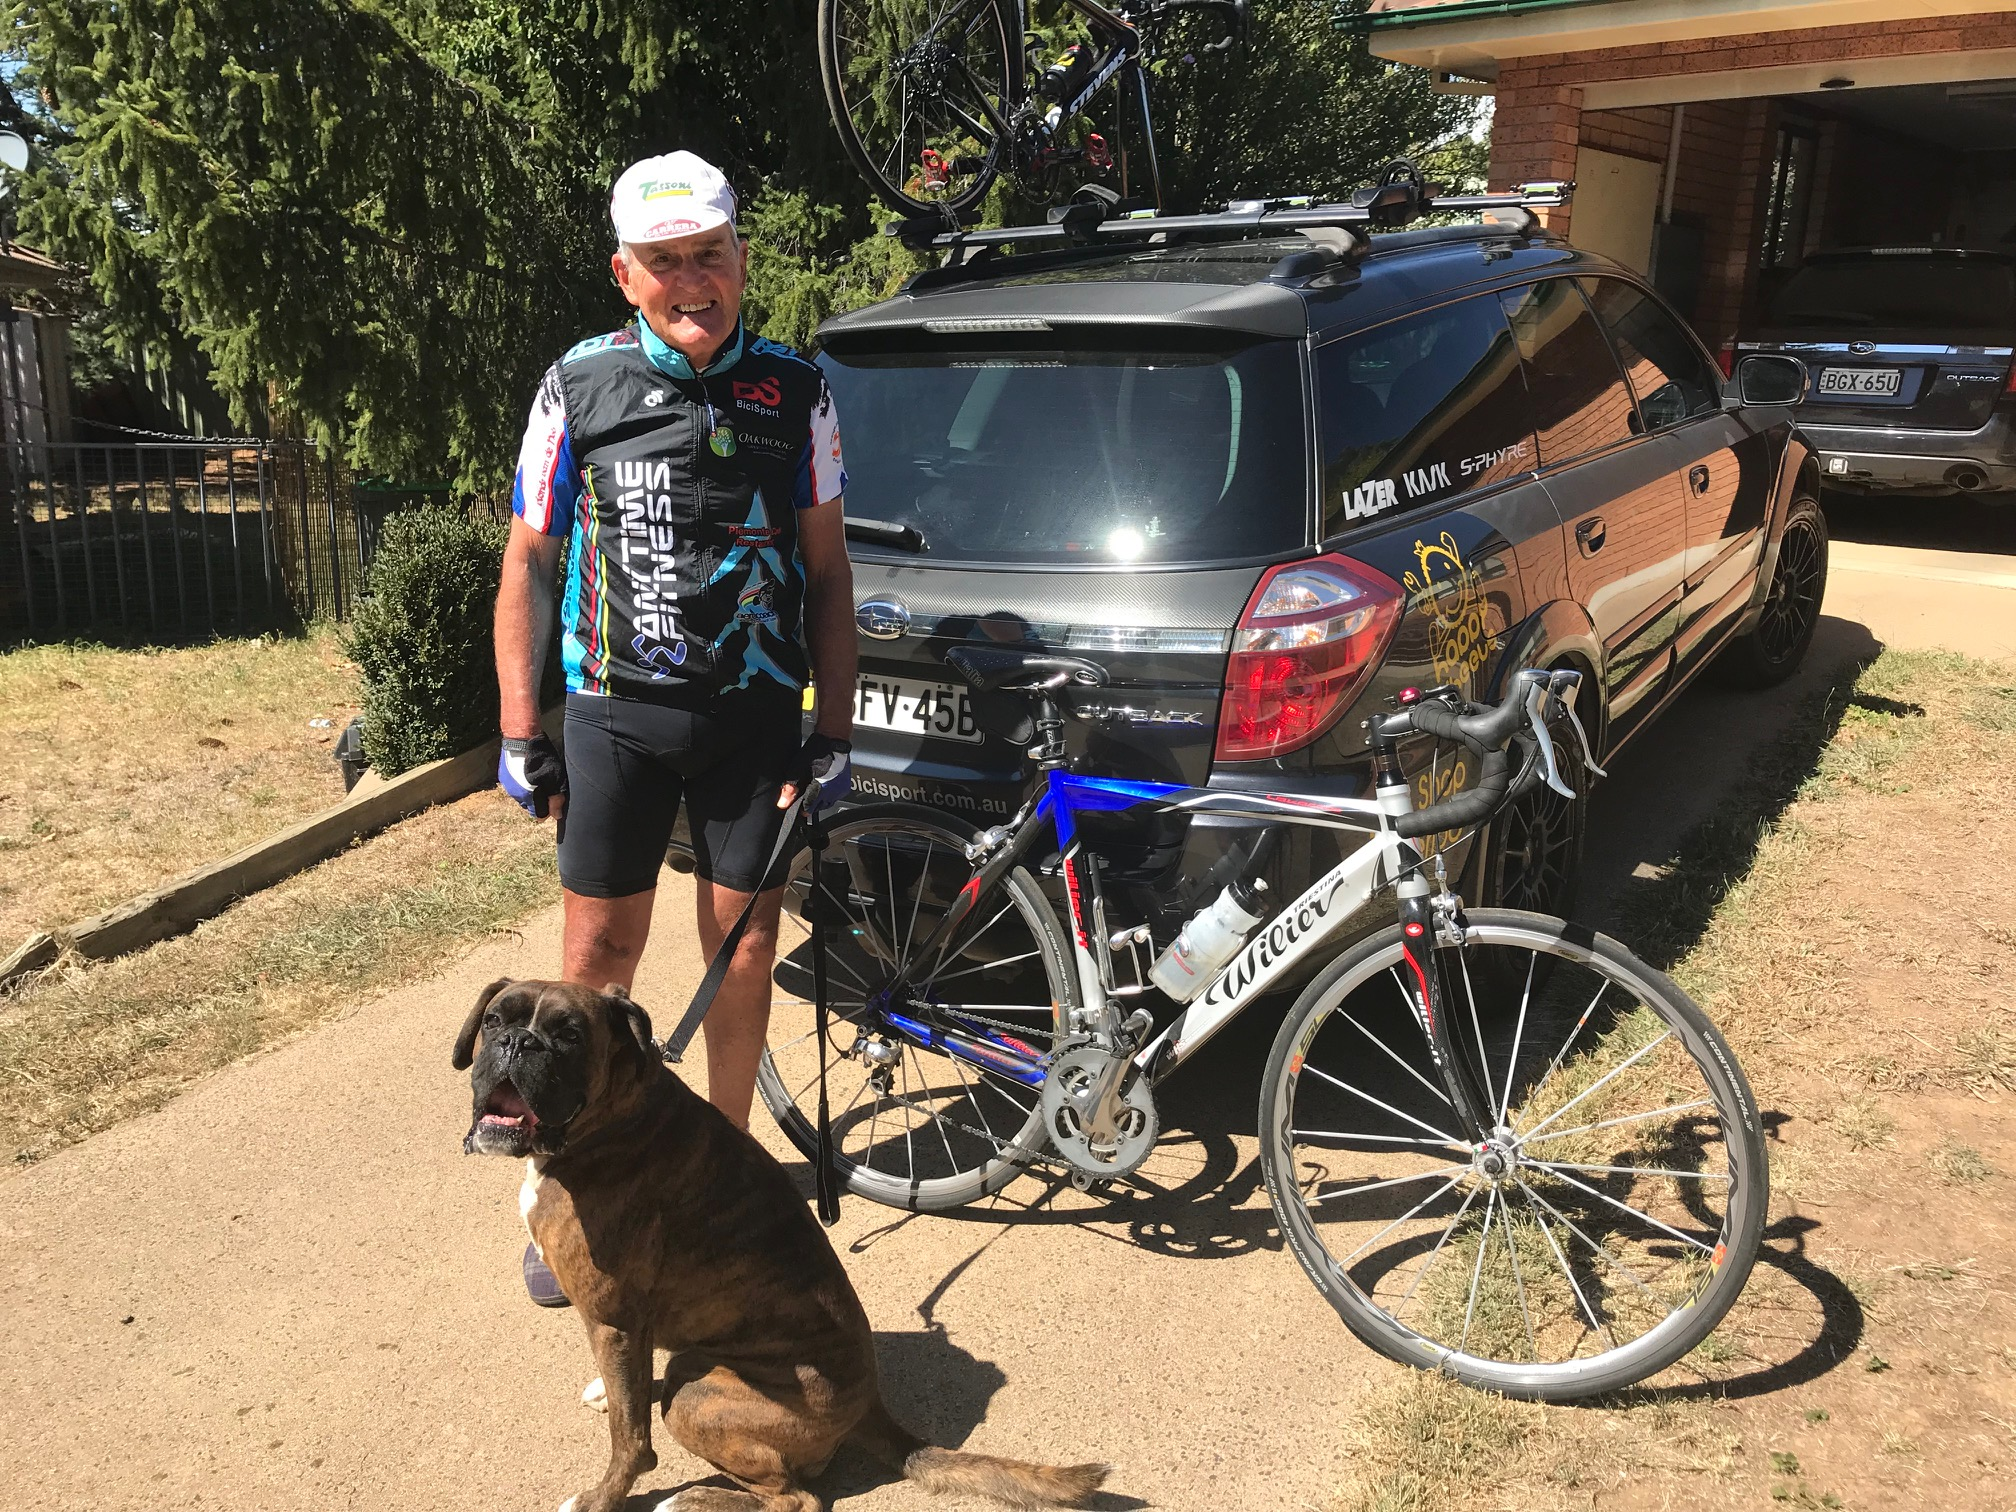 Orange NSW @ 1 Mar - David Cooper and Sonny Boy spotted in Orange before a local training ride last Friday. David was one of the original BiciSport founding fathers from 1995 and now resides in Orange and a Level 1 CyclingNSW Commissaire.